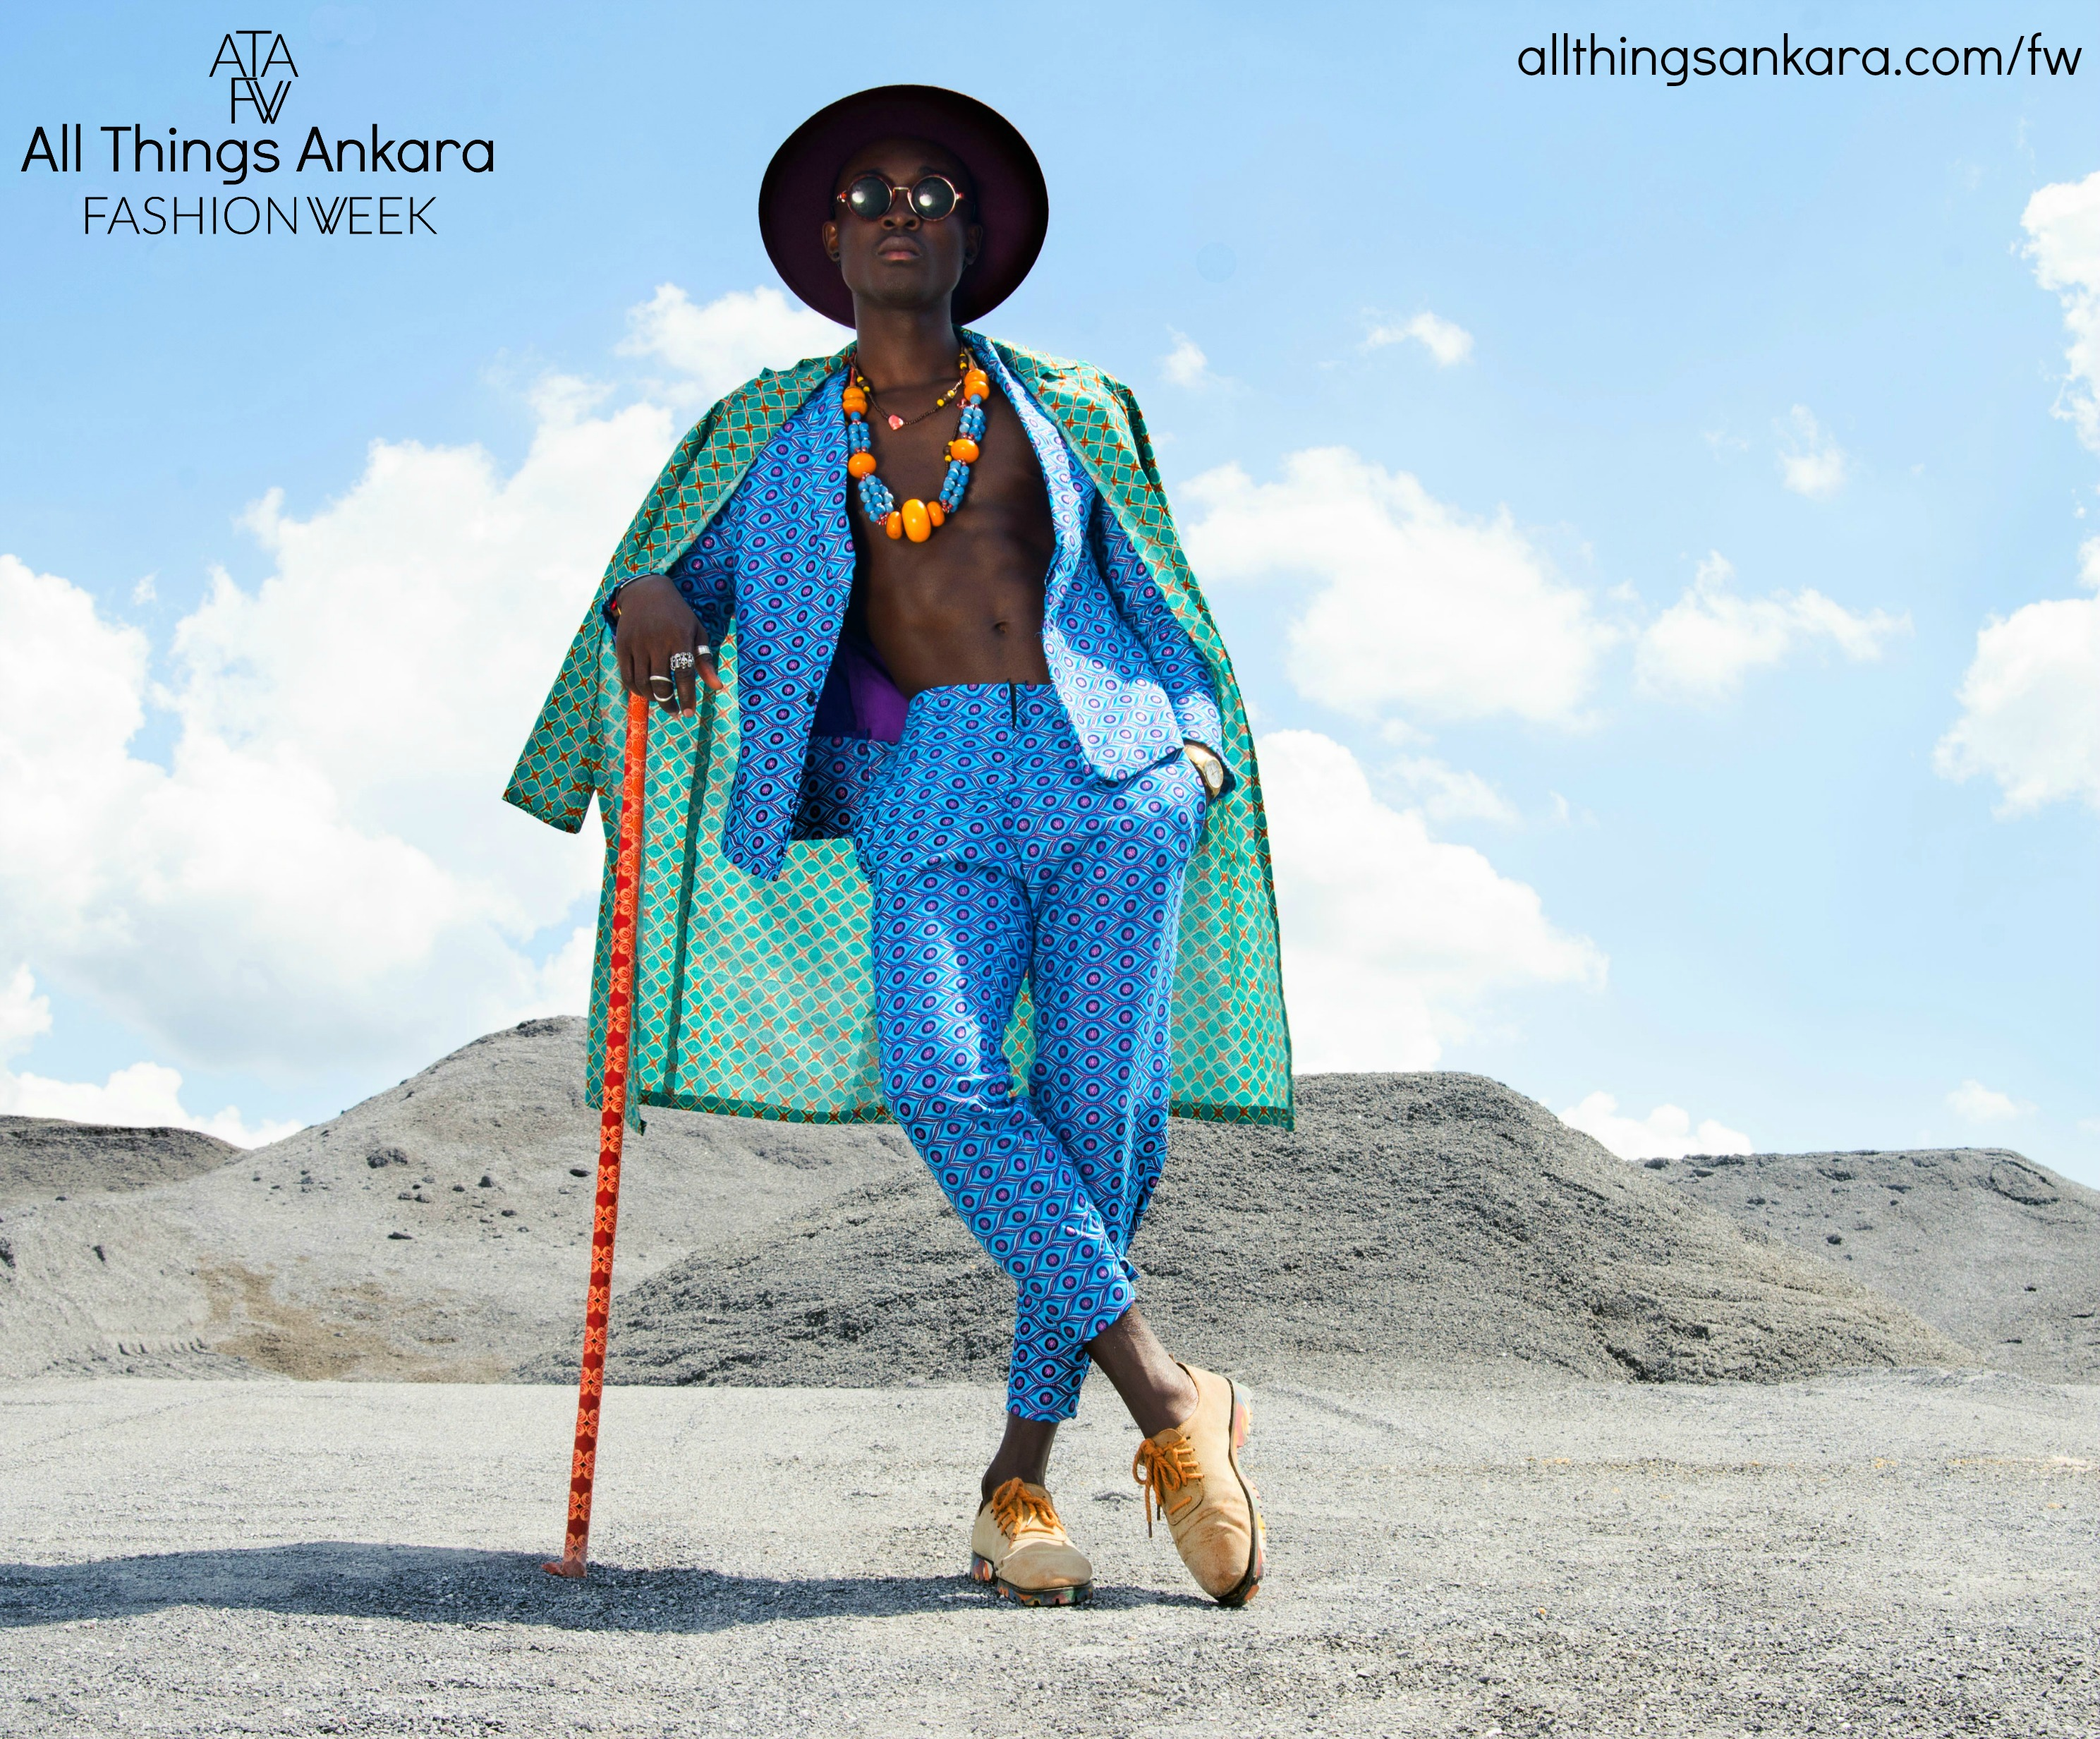 all-things-ankara-fashion-week-2015-campaign-7